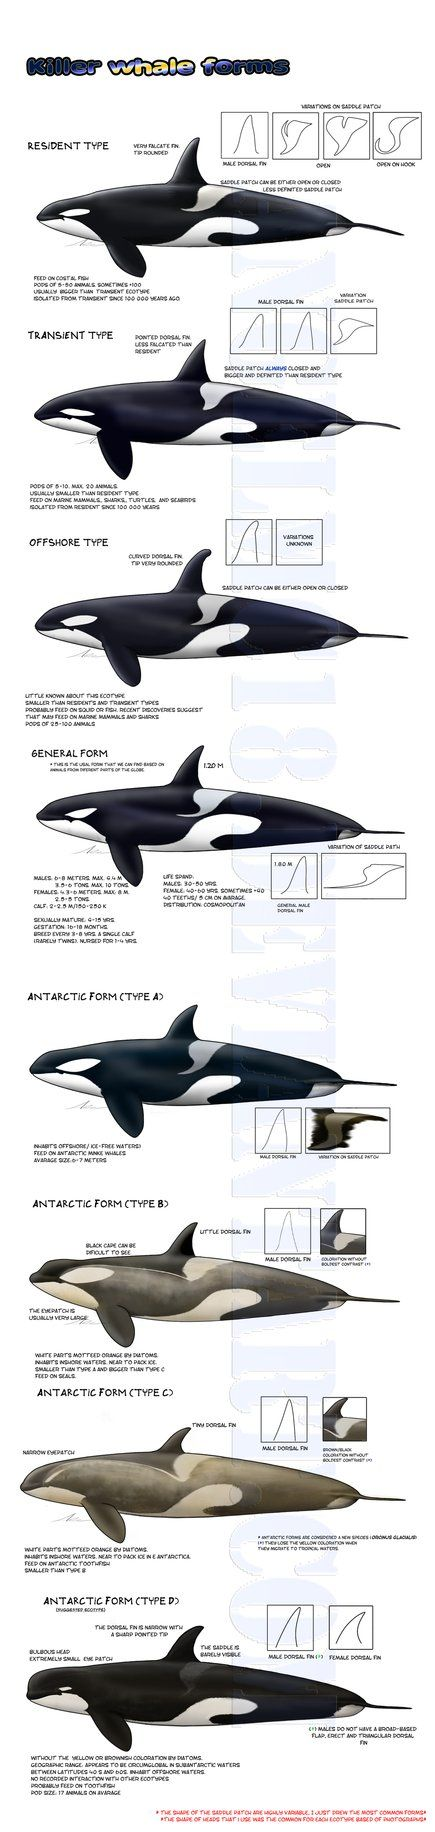 152 Best Orca Images On Pinterest Killer Whales Orcas And Dolphins